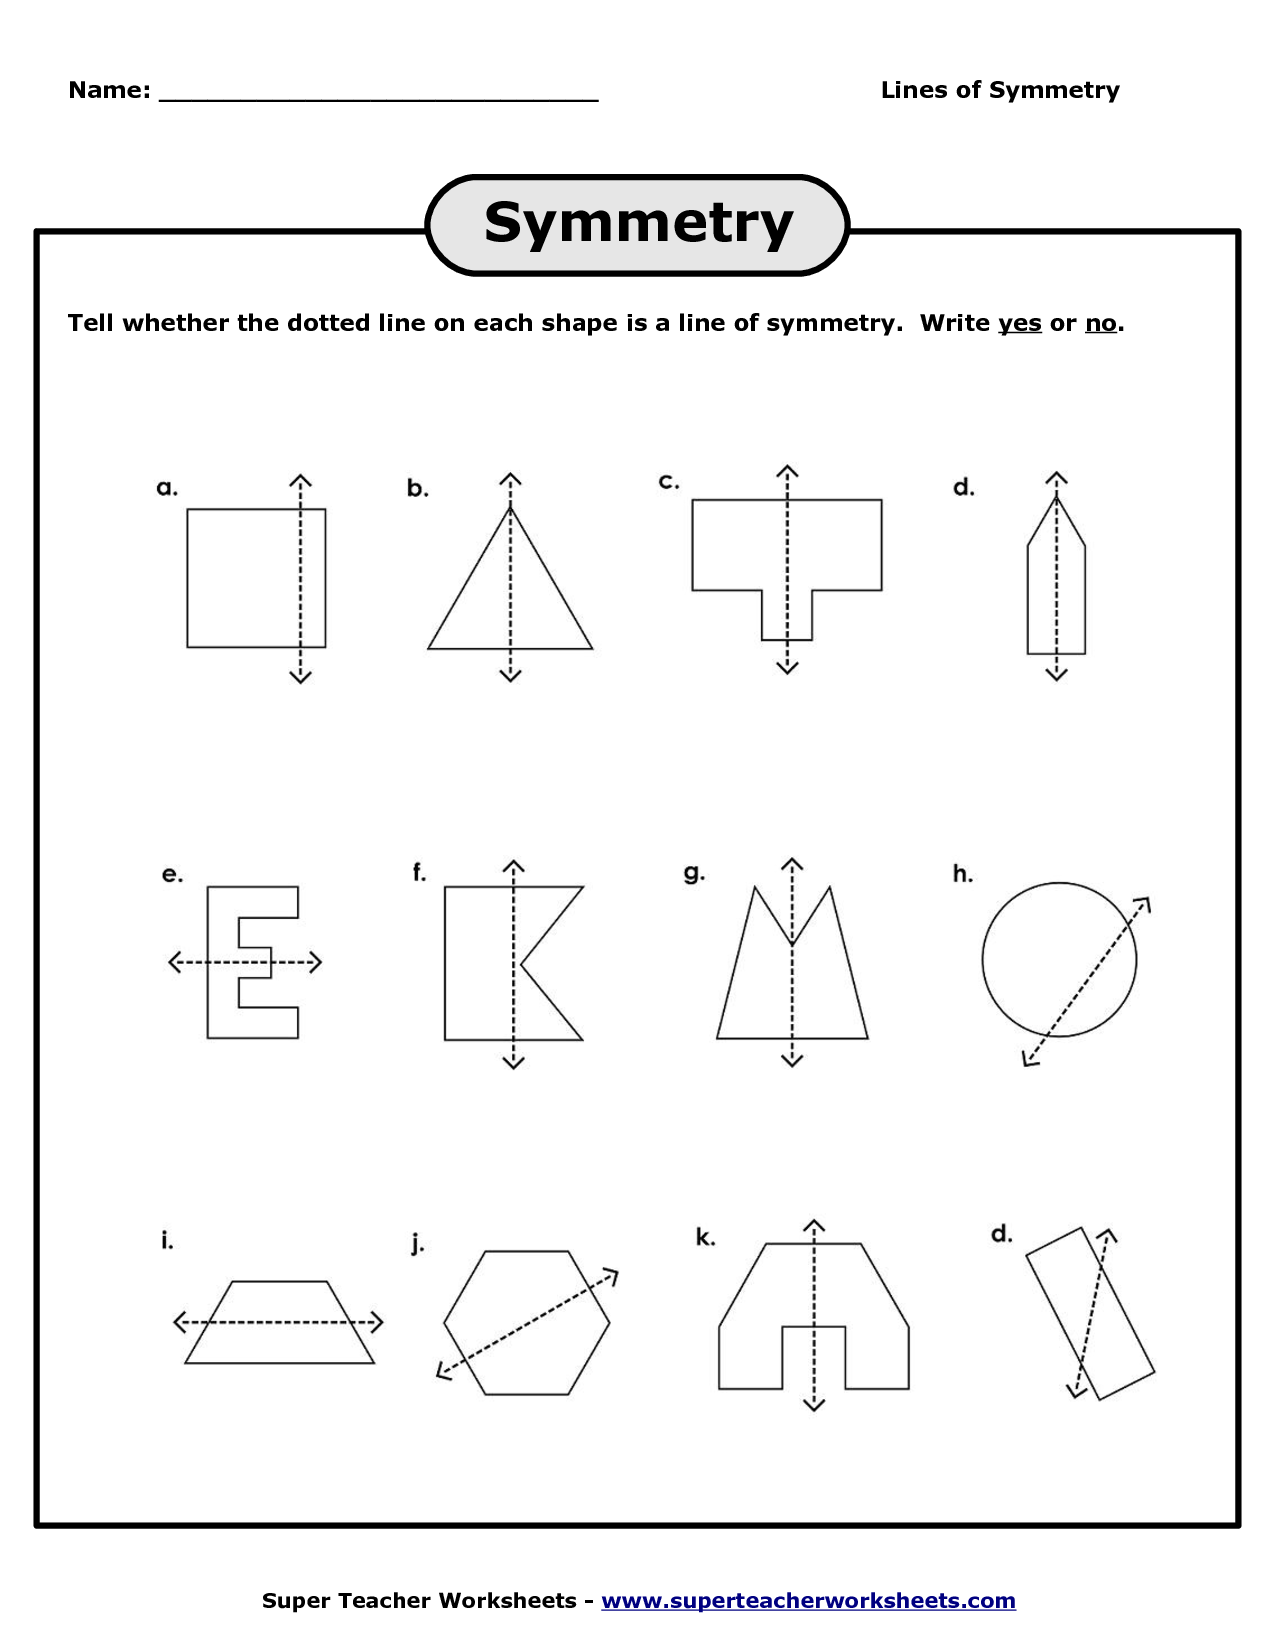 Worksheets Symmetry Worksheets lines of symmetry worksheets worksheet pdf pdf